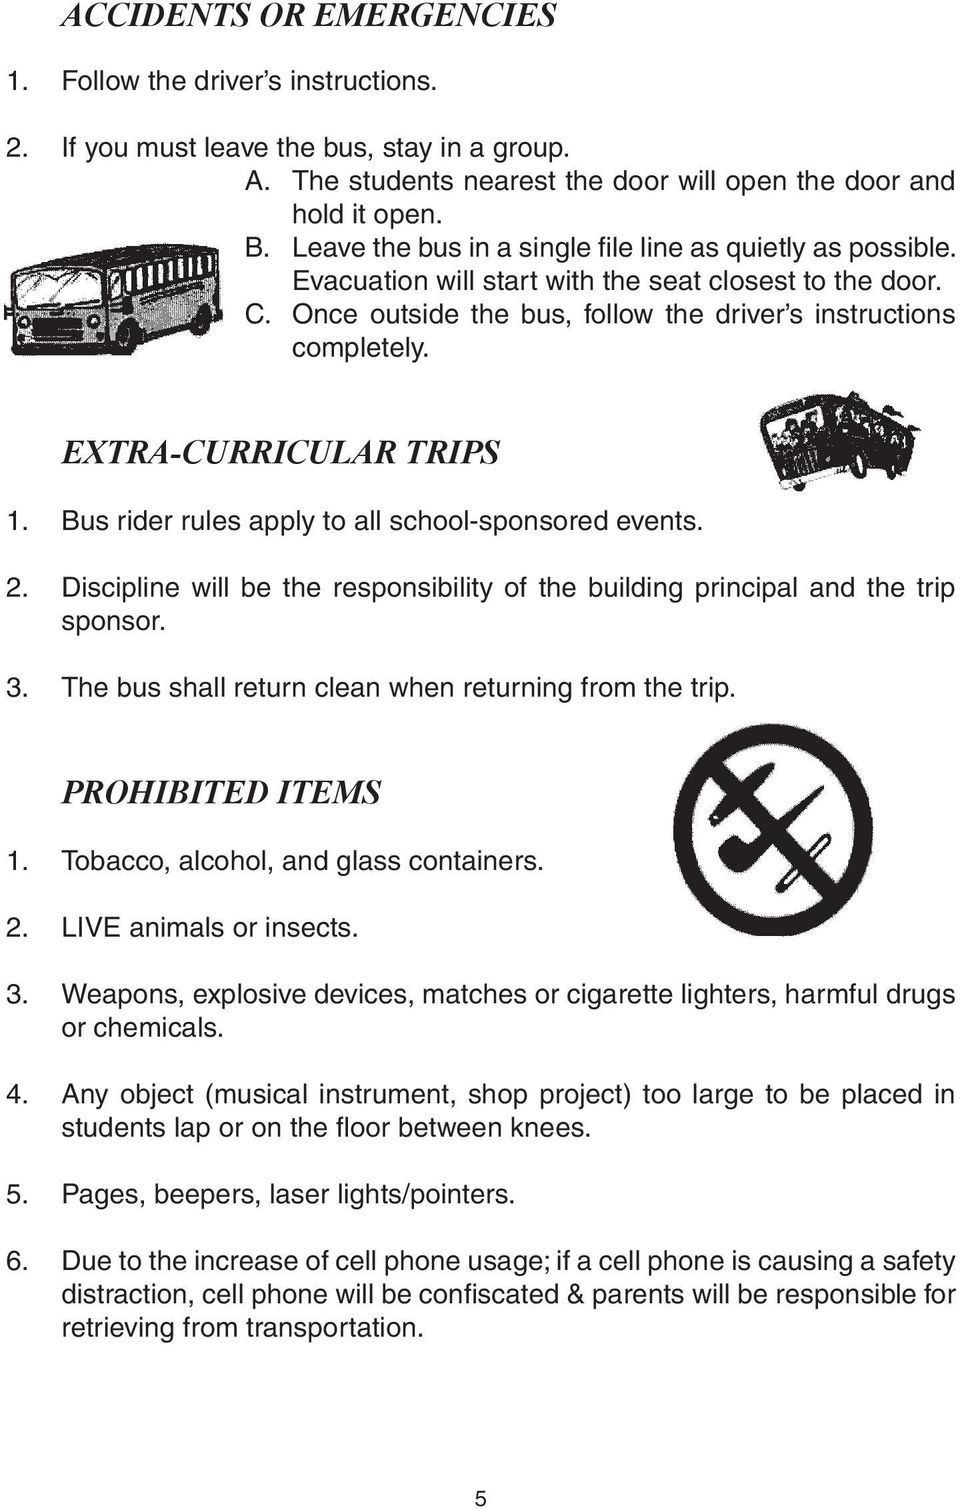 EXTRA-CURRICULAR TRIPS 1. Bus rider rules apply to all school-sponsored events. 2. Discipline will be the responsibility of the building principal and the trip sponsor. 3.